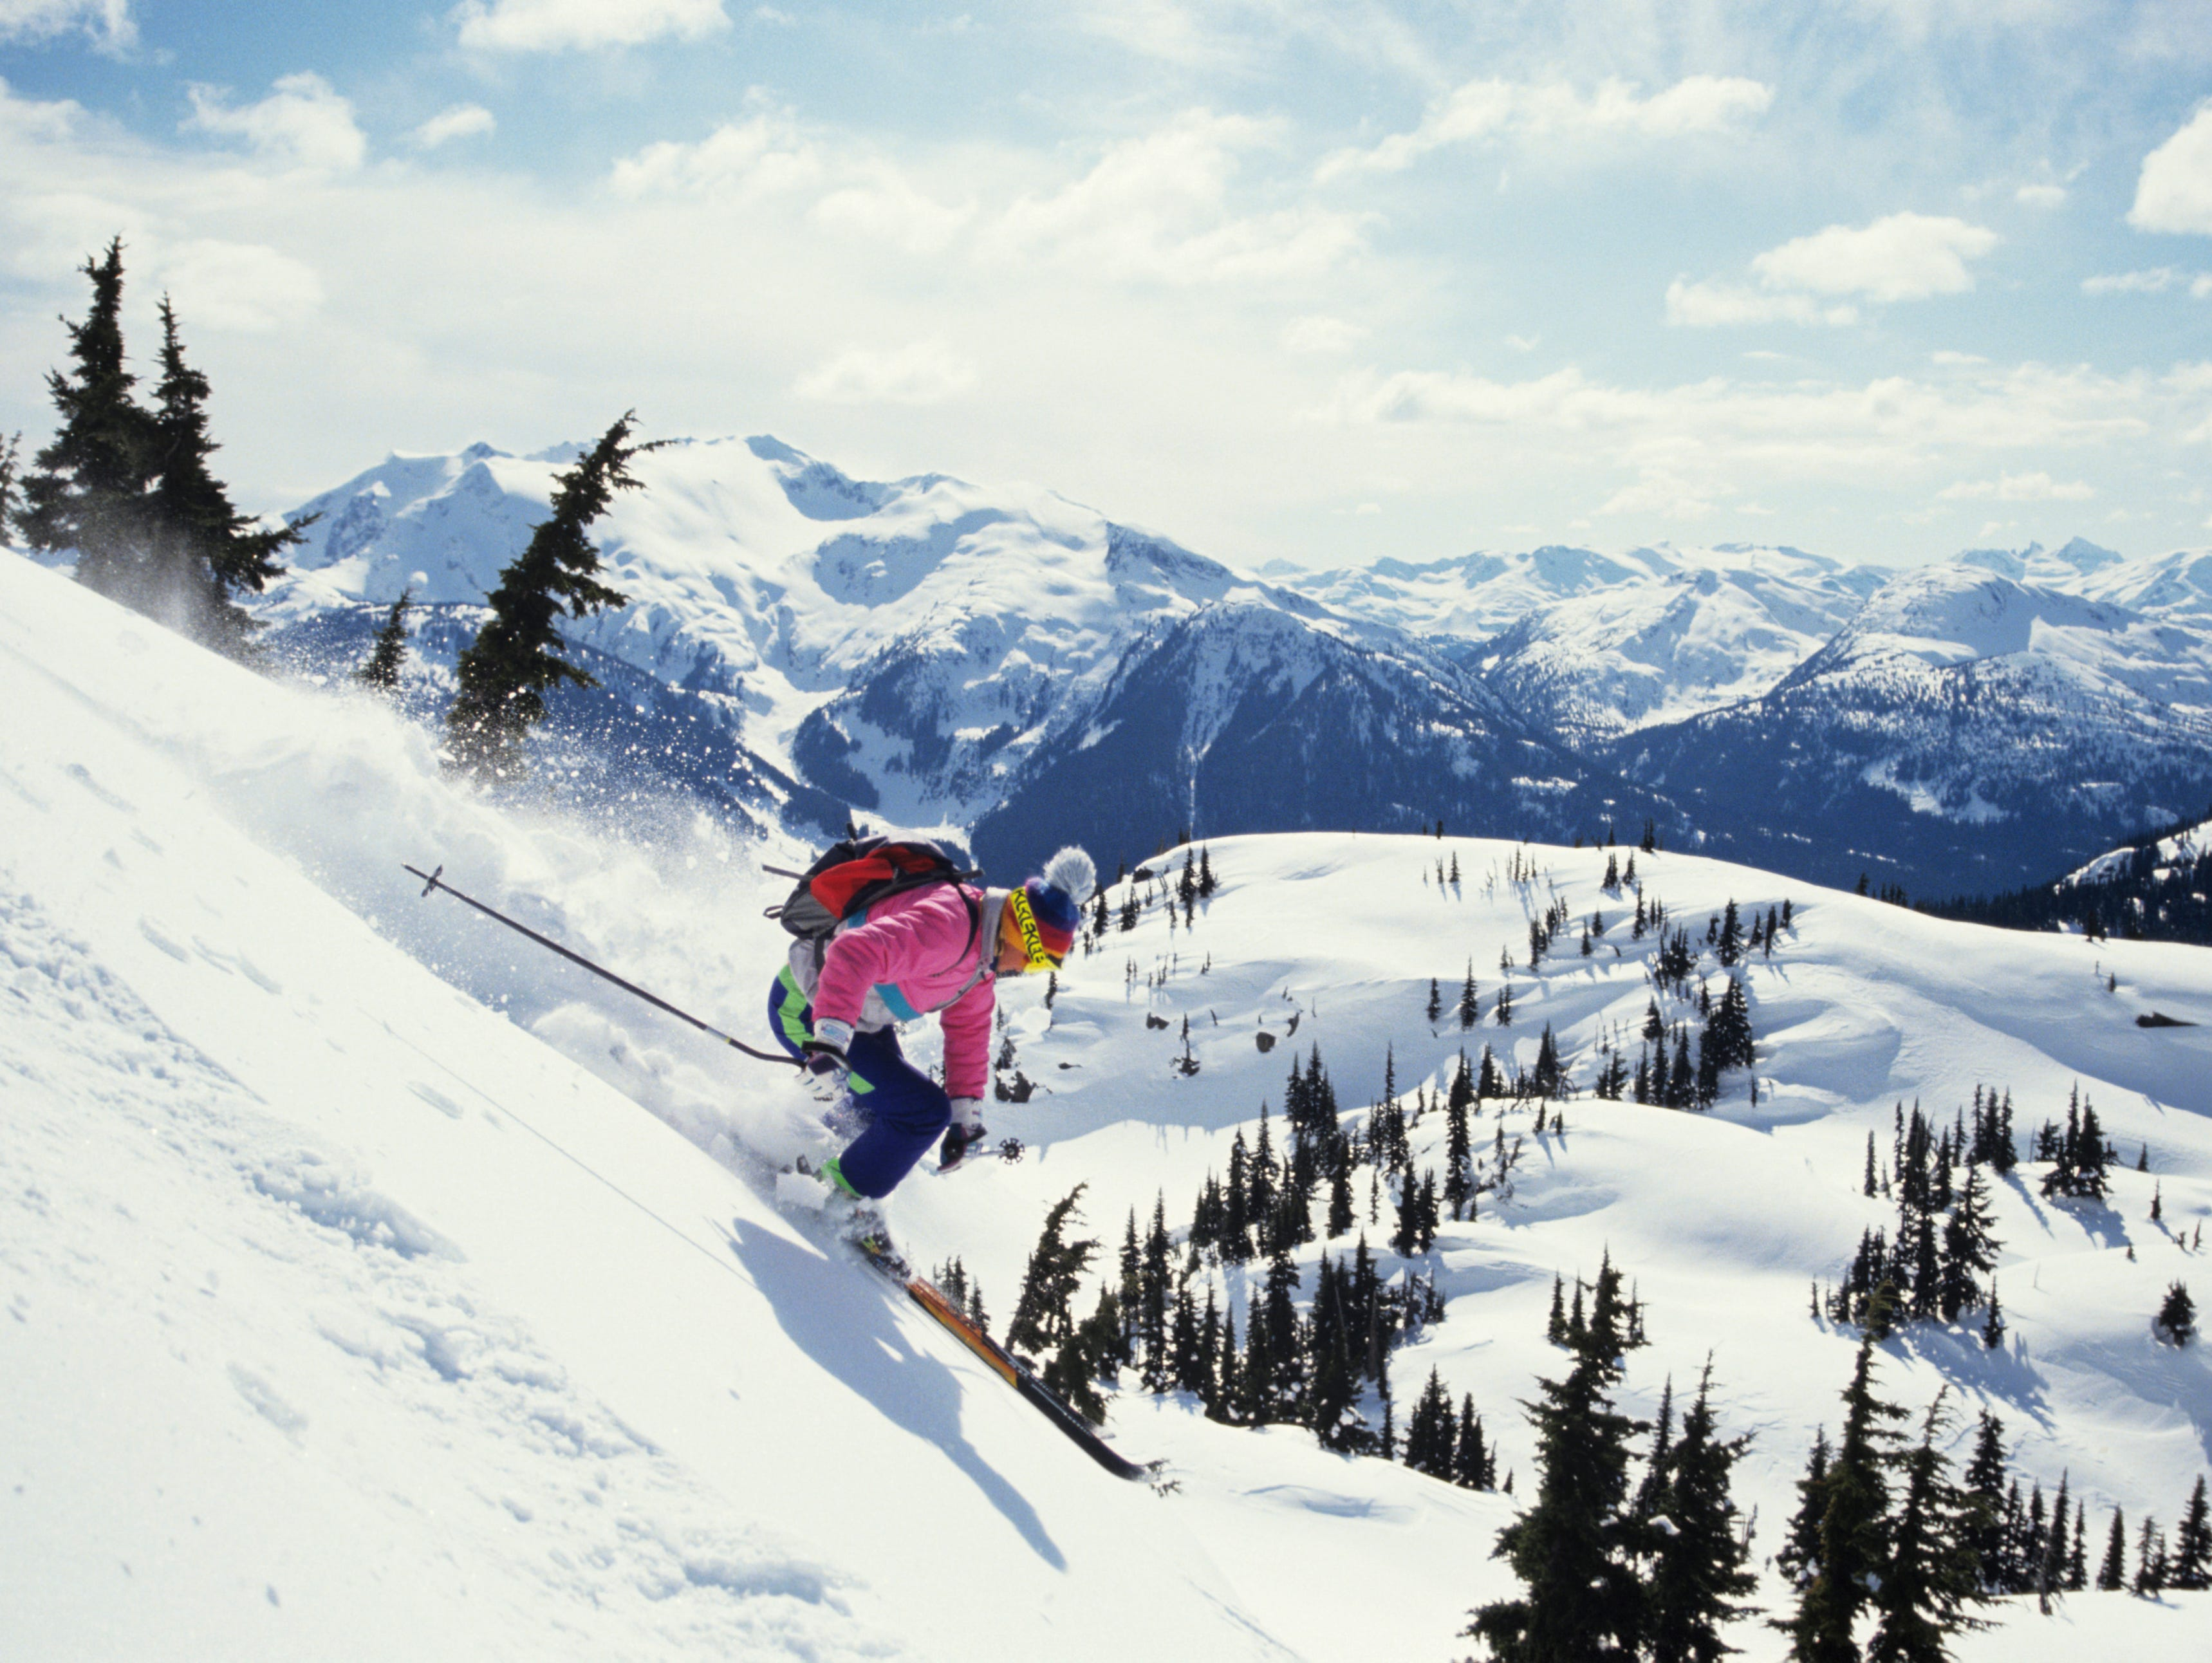 Save up to 50% on lift tickets and rentals nationwide!